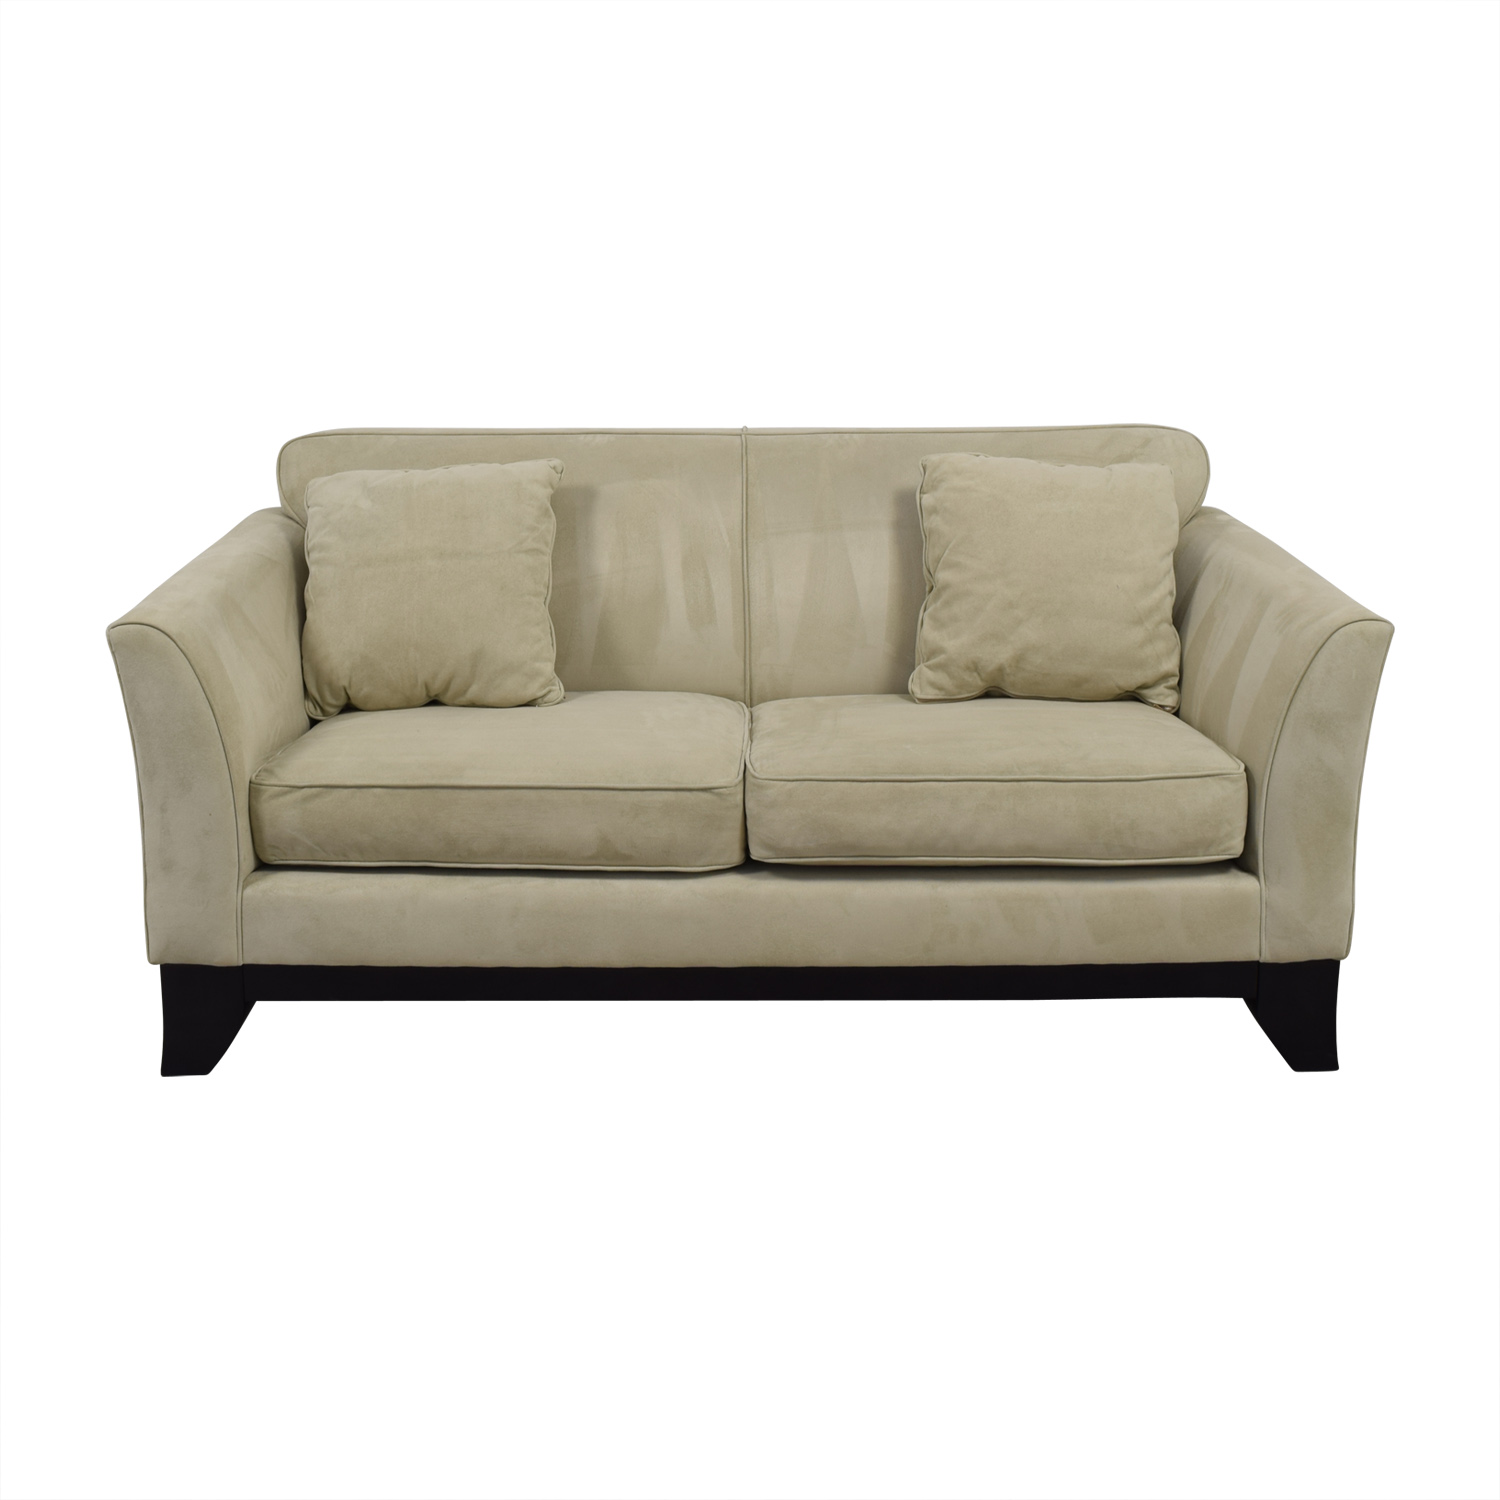 Swell 84 Off Pottery Barn Pottery Barn Greenwich Beige Loveseat Sofas Ocoug Best Dining Table And Chair Ideas Images Ocougorg